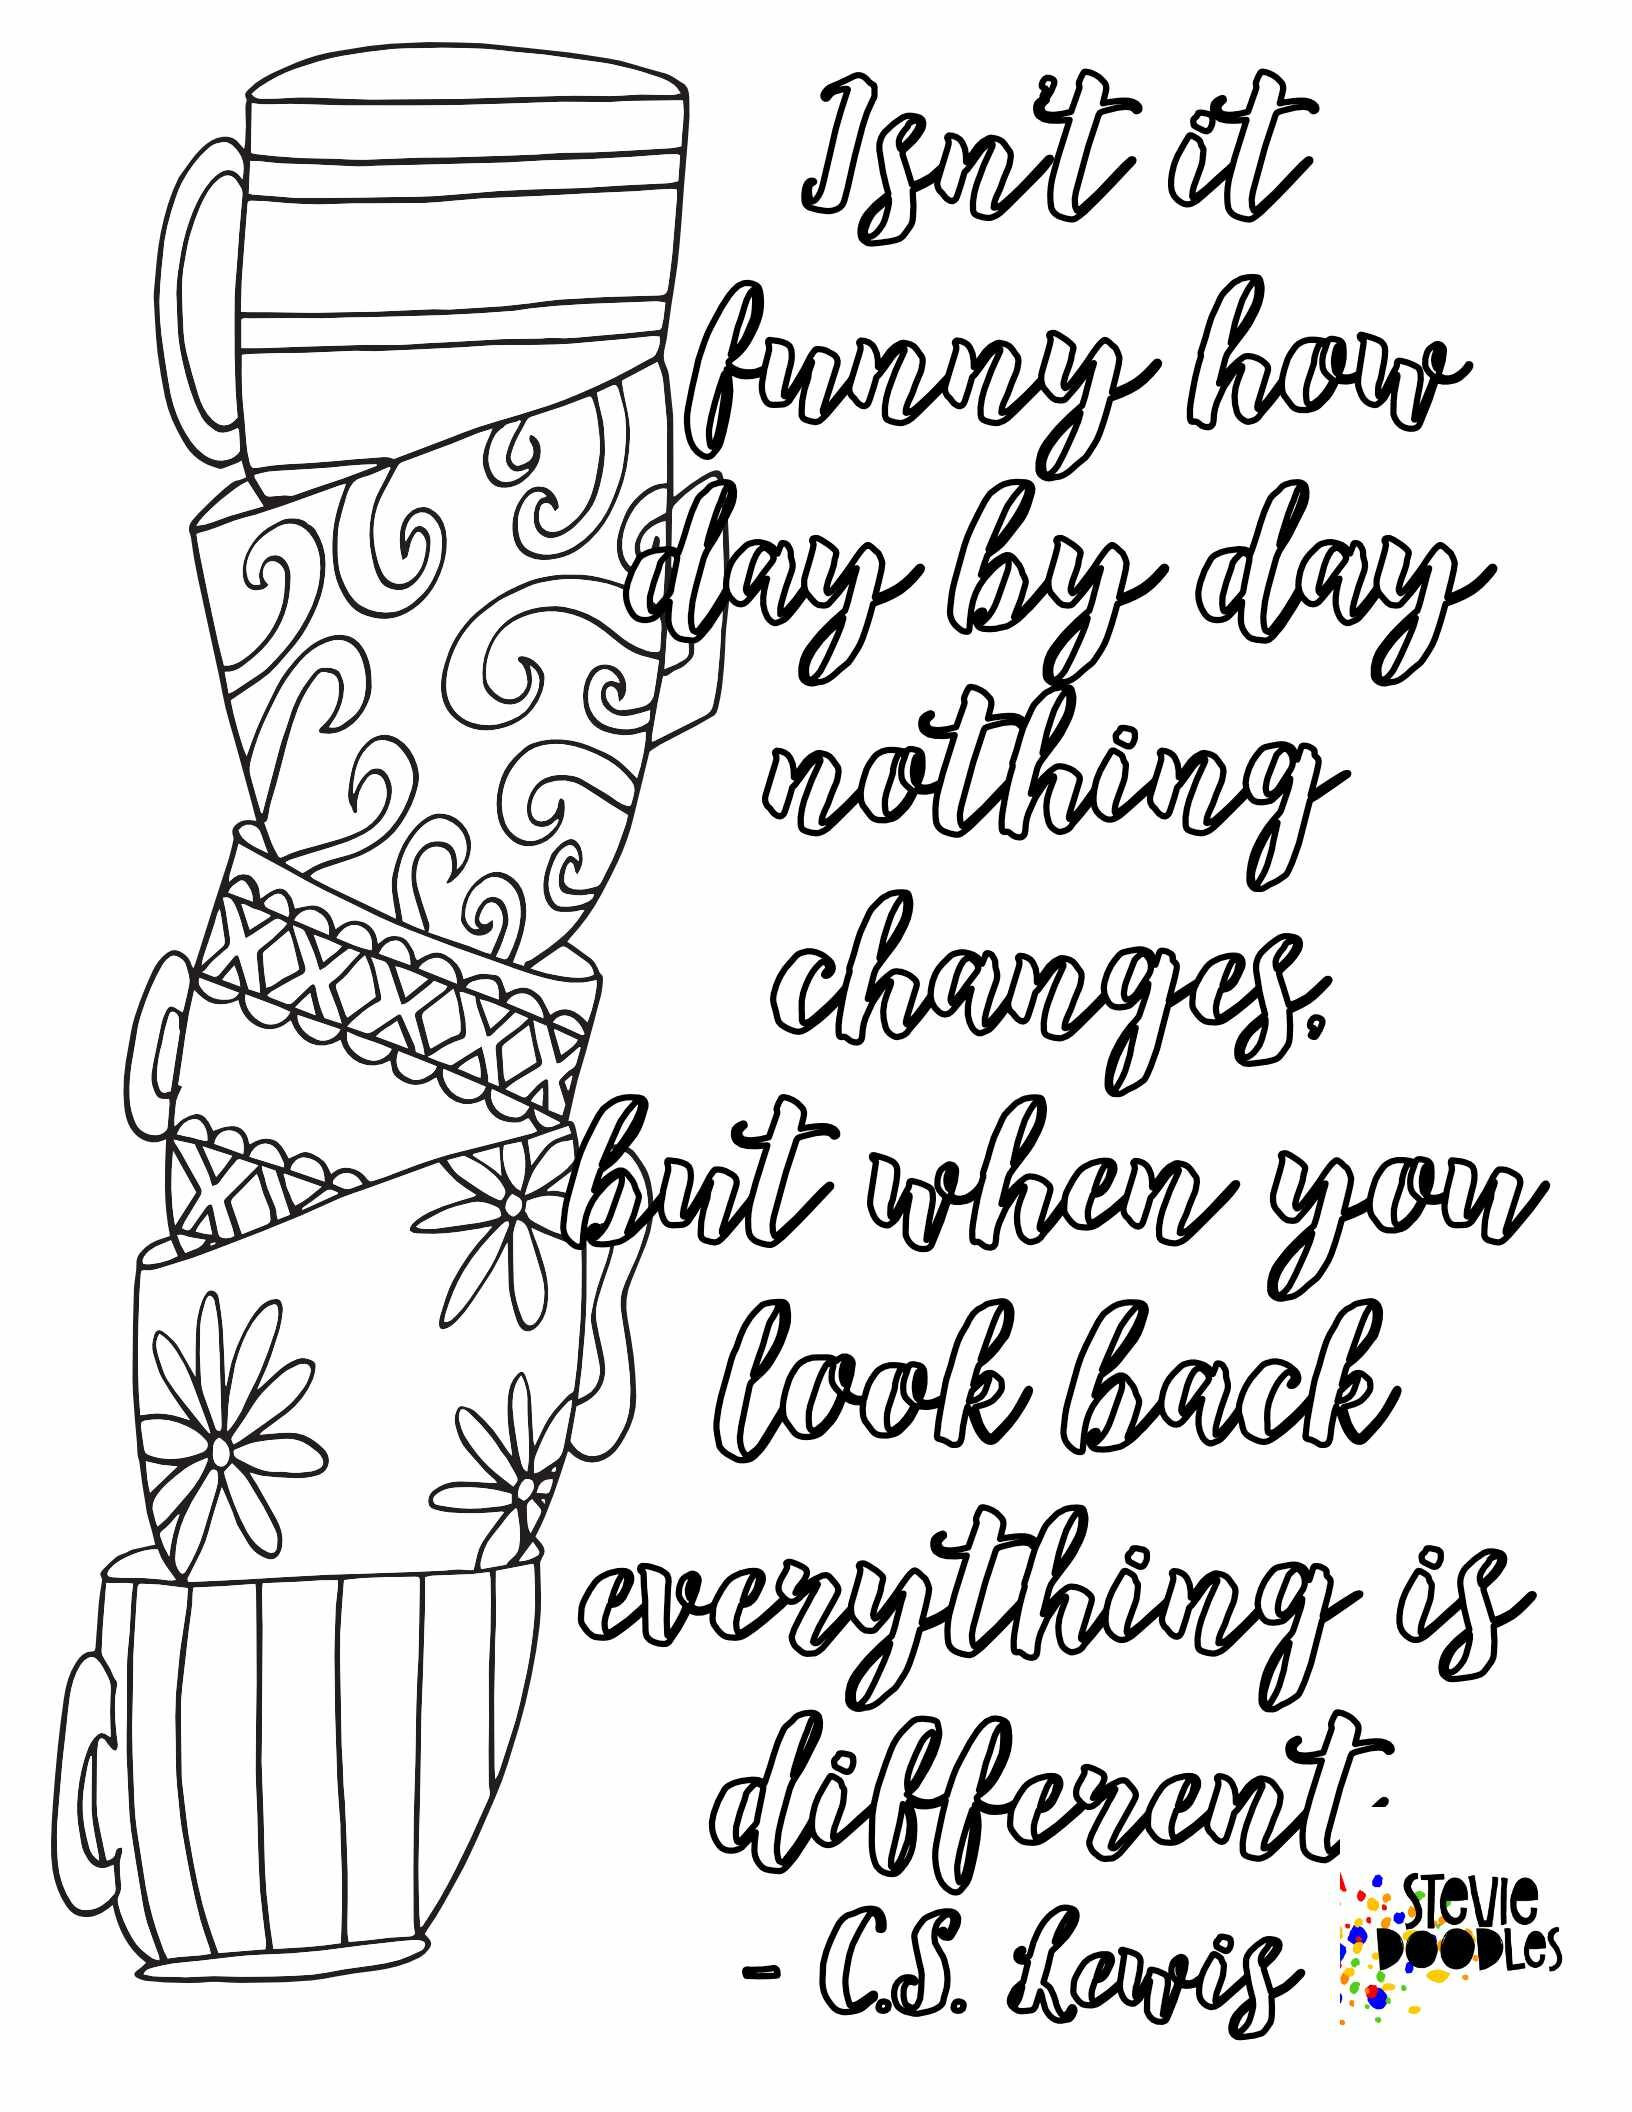 5 Free C S Lewis Quote Coloring Pages Stevie Doodles Free Printable Coloring Pages